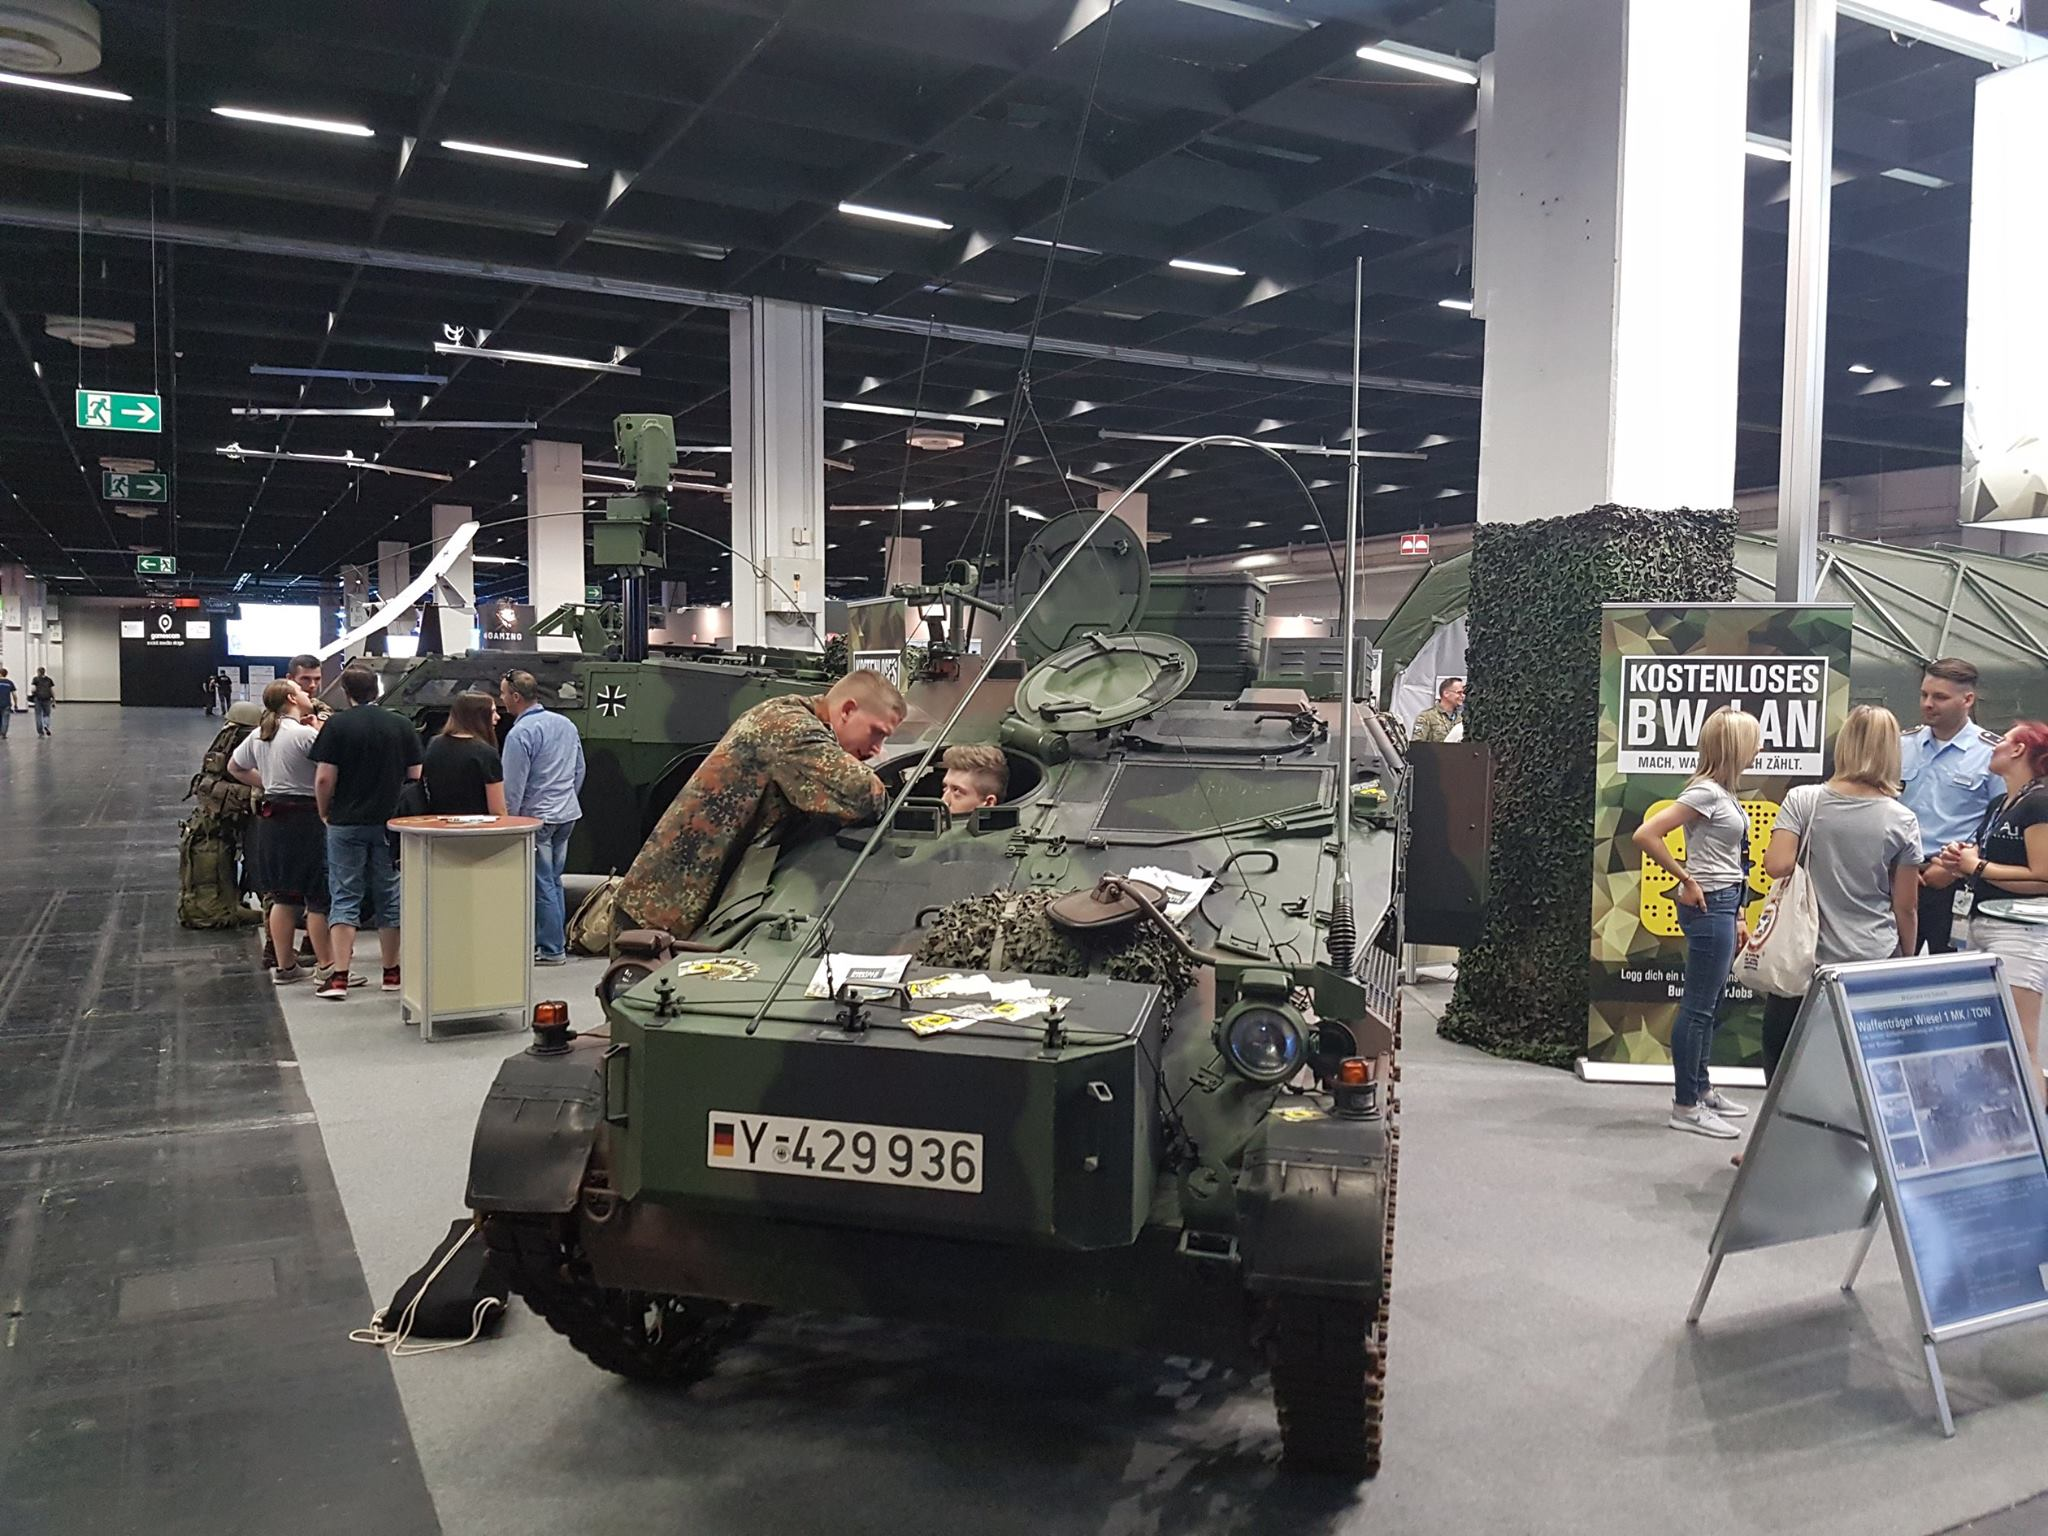 germanarmyvehicles1.jpg